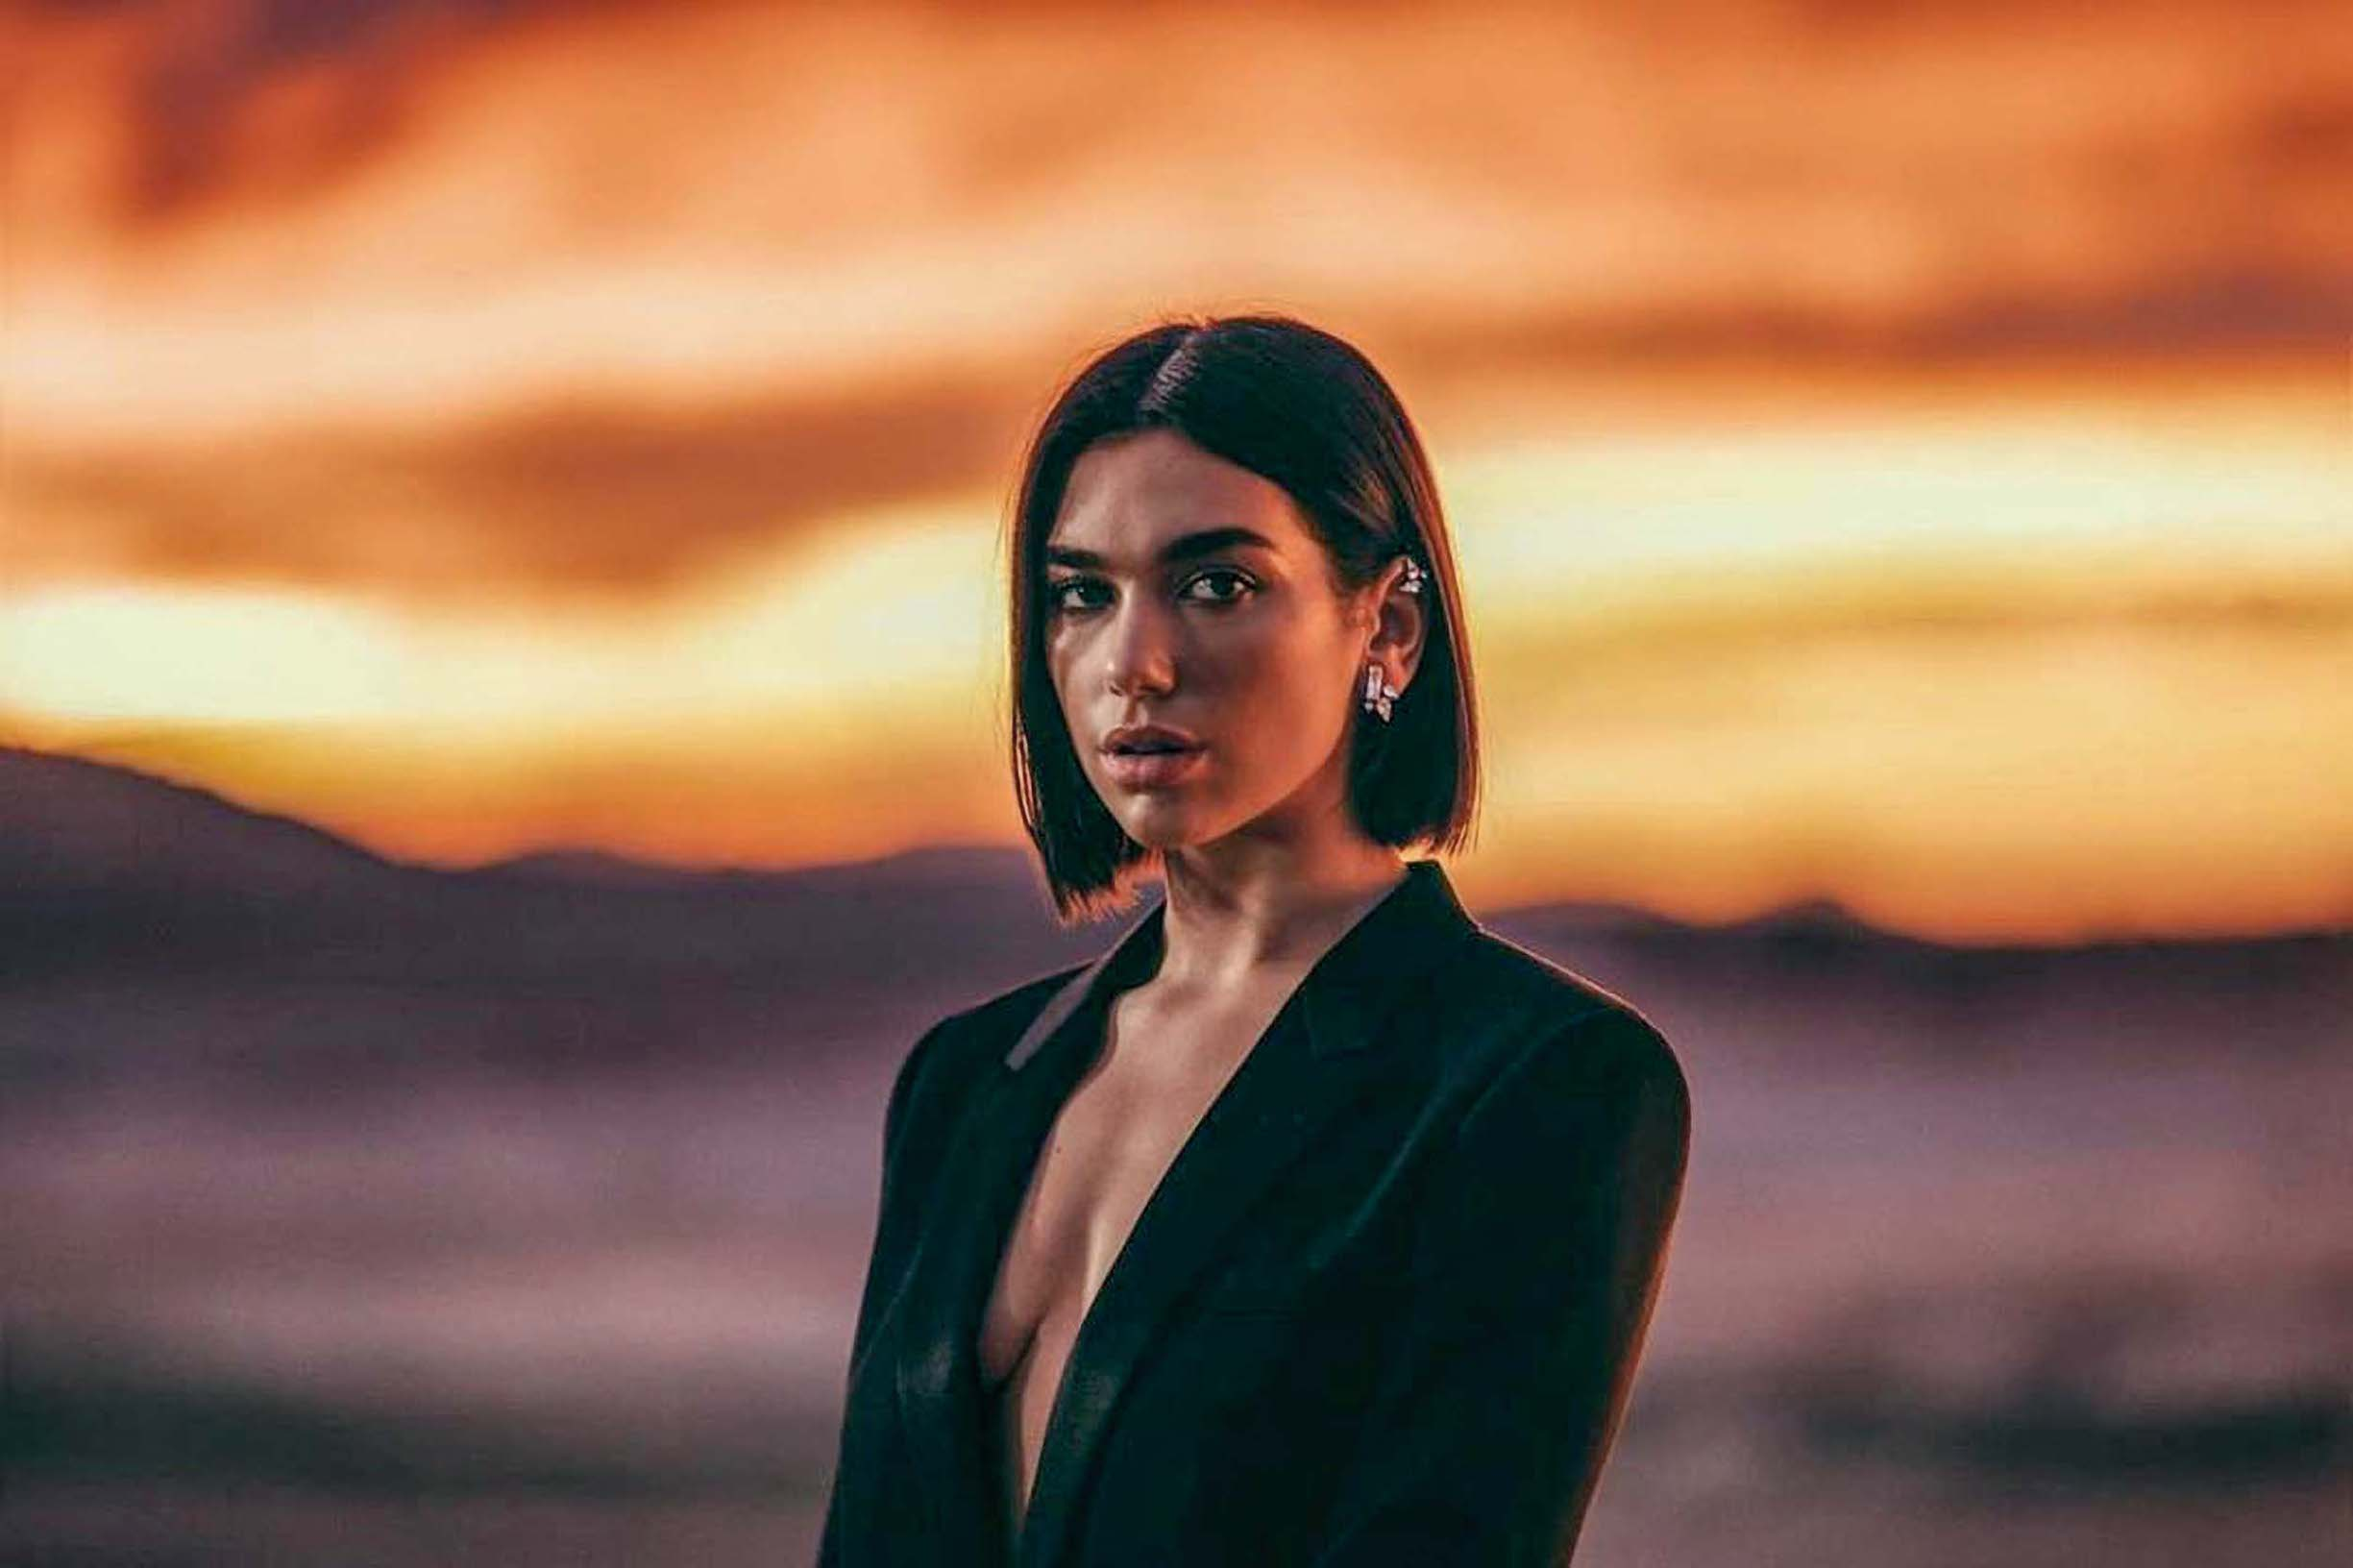 """Non Exclusive: Dua Lipa has been named the ambassador of YSL Beauté's upcoming women's fragrance.  """"I connect so much with the campaign because of its fearlessness,"""" the songstress said in a statement. """"I stand for the importance of being confident, strong and powerful, and of not compromising on who you are, what you do and what you believe in, of always being proud of the things you do, and I feel that goes down very well with the same philosophy behind Yves Saint Laurent's new fragrance.""""  """"The voice of her generation, Dua Lipa embodies the values of independence and freedom, which have always been part of Yves Saint Laurent's DNA,"""" said Stephan Bezy, international general manager of Yves Saint Laurent Beauté at L'Oréal.  London-born Lipa broke onto the scene with her eponymous first album in 2017 and now is the most streamed female artist worldwide.  -------  DISCLAIMER:  BEEM does not claim any Copyright or License in the attached material. Any downloading fees charged by BEEM are for BEEM's services only, and do not, nor are they intented to, convey to the user any Copyright or License in the material. By publshing this material, the user expressly agrees to indemnify and to hold BEEM harmless from any claims, demands, or causes of action arising out of or connected in any way with user's publication of the material., Image: 442868977, License: Rights-managed, Restrictions: MANDATORY CREDIT OR DOUBLE FEE WILL BE CHARGED, Model Release: no, Credit line: Profimedia, Beem"""